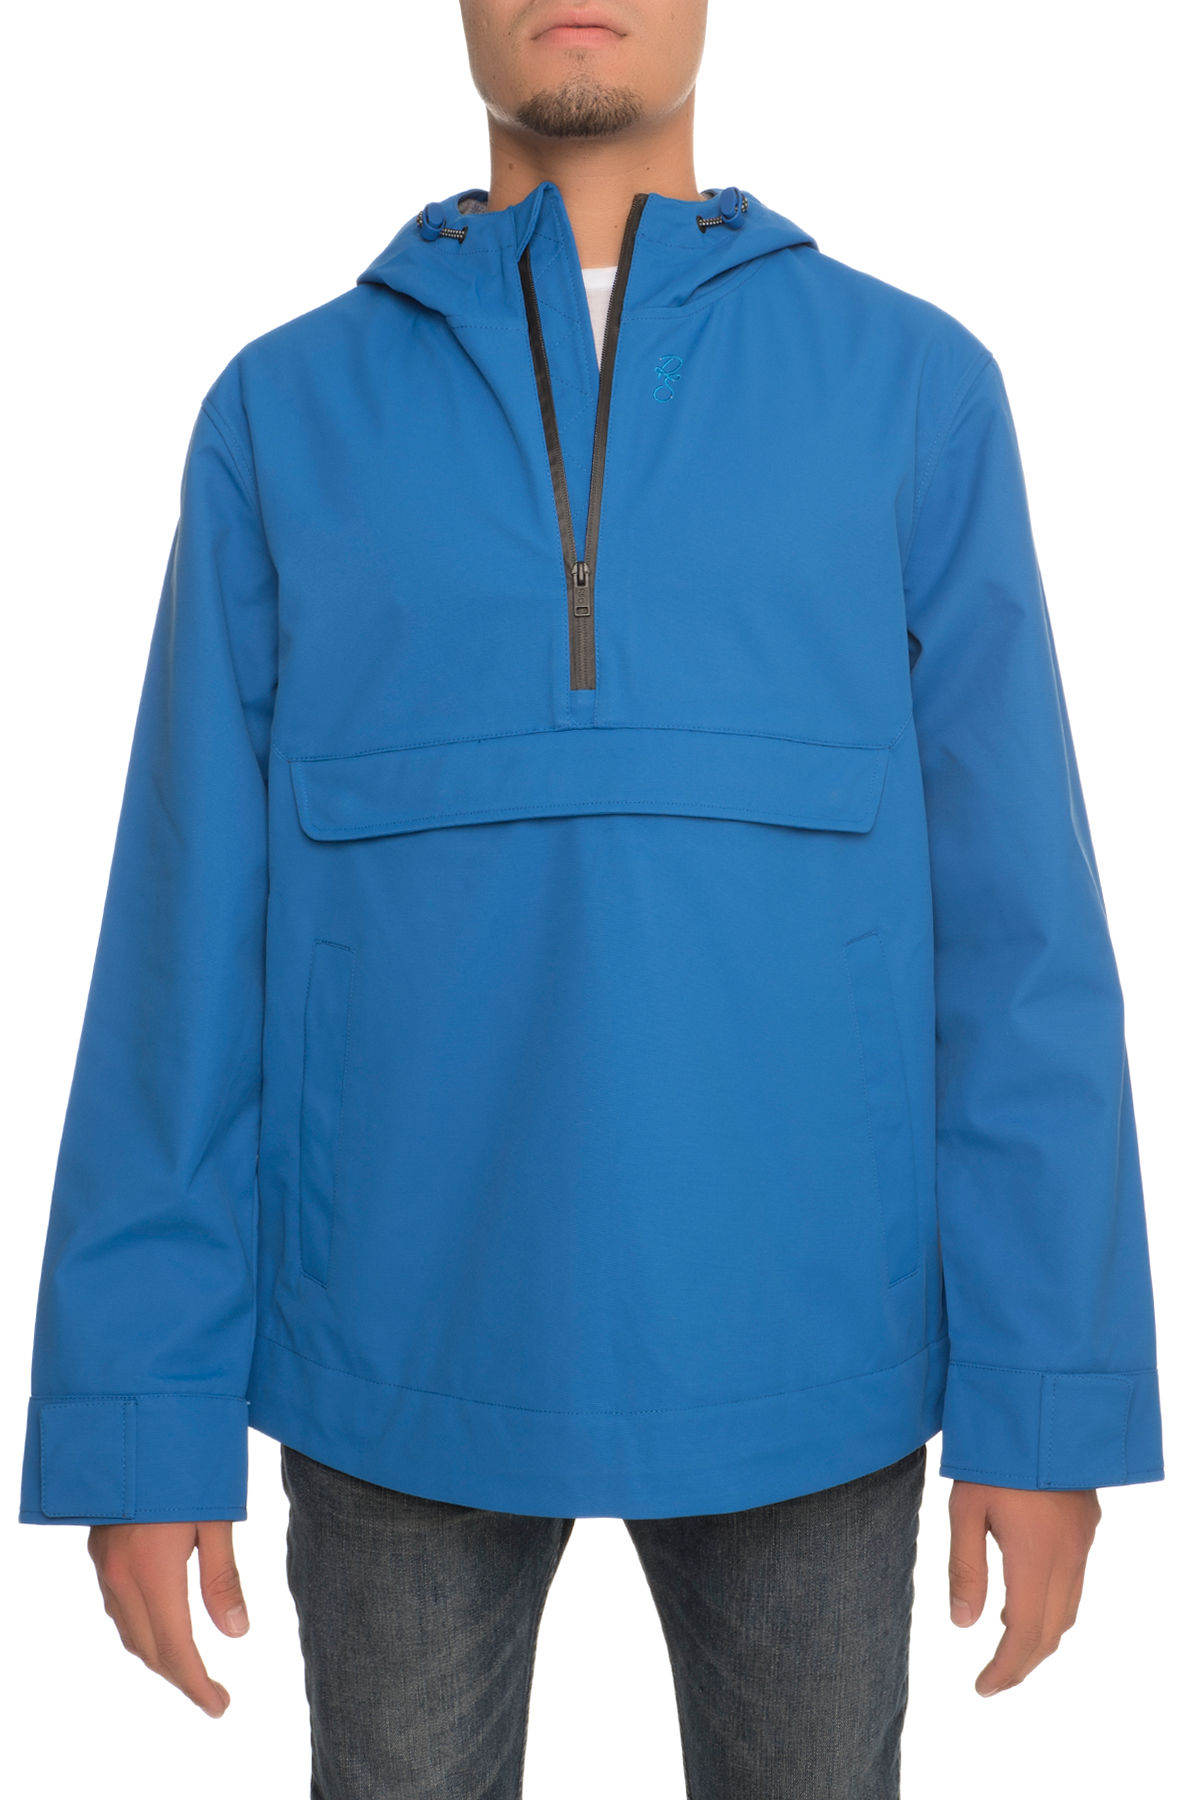 Image of The Reveal Jacket in Marina Blue